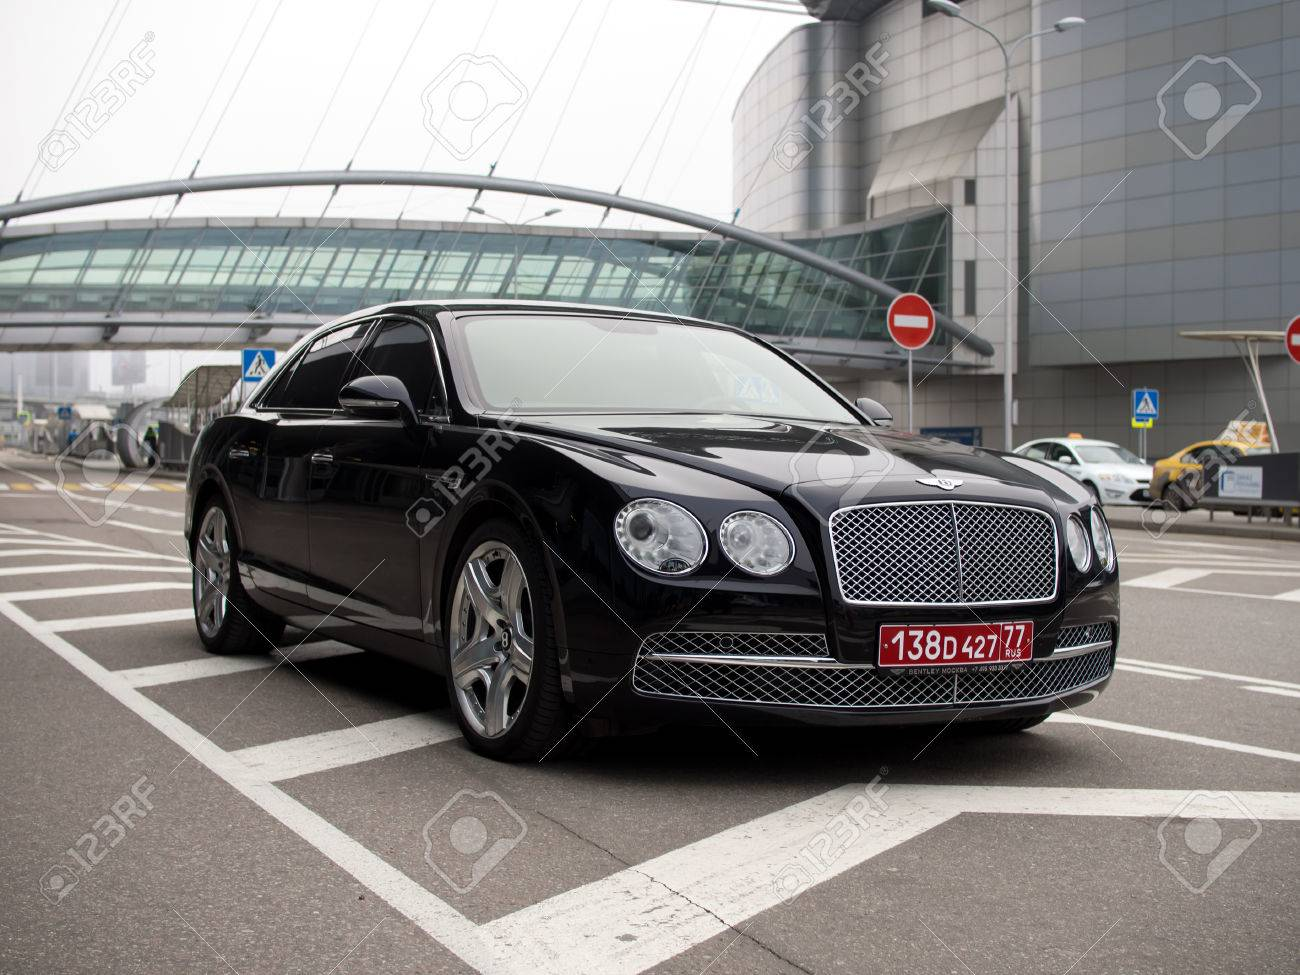 create with designboom the design pantone bentley am screen colors gt at year of continental shot s